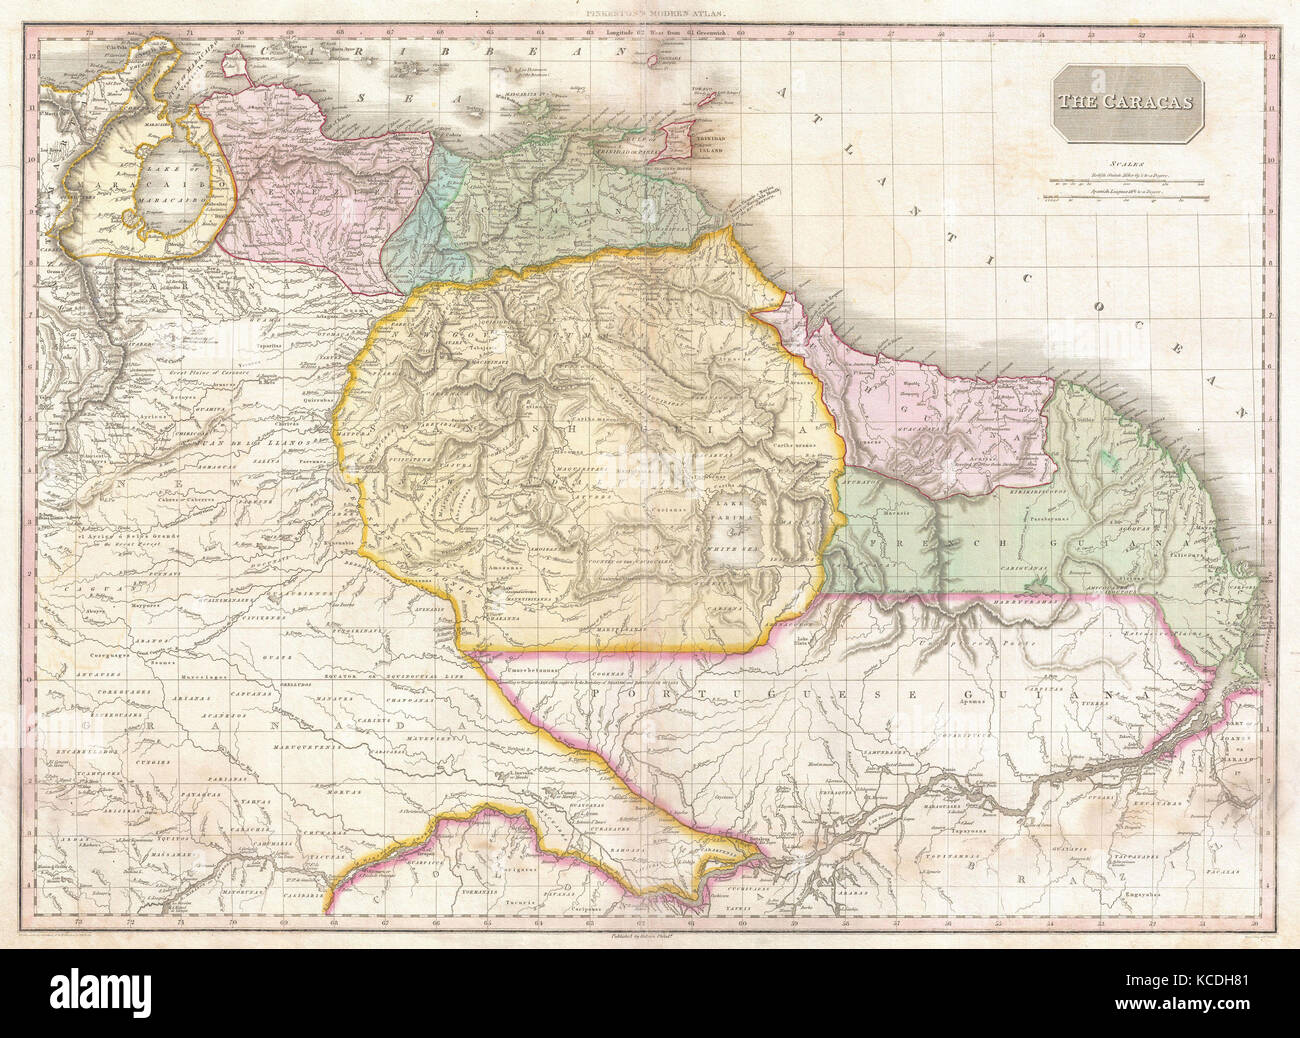 1818  Pinkerton Map of Northeastern South America  Venezuela  Guyana     1818  Pinkerton Map of Northeastern South America  Venezuela  Guyana   Surinam  John Pinkerton  1758     1826  Scottish antiquarian